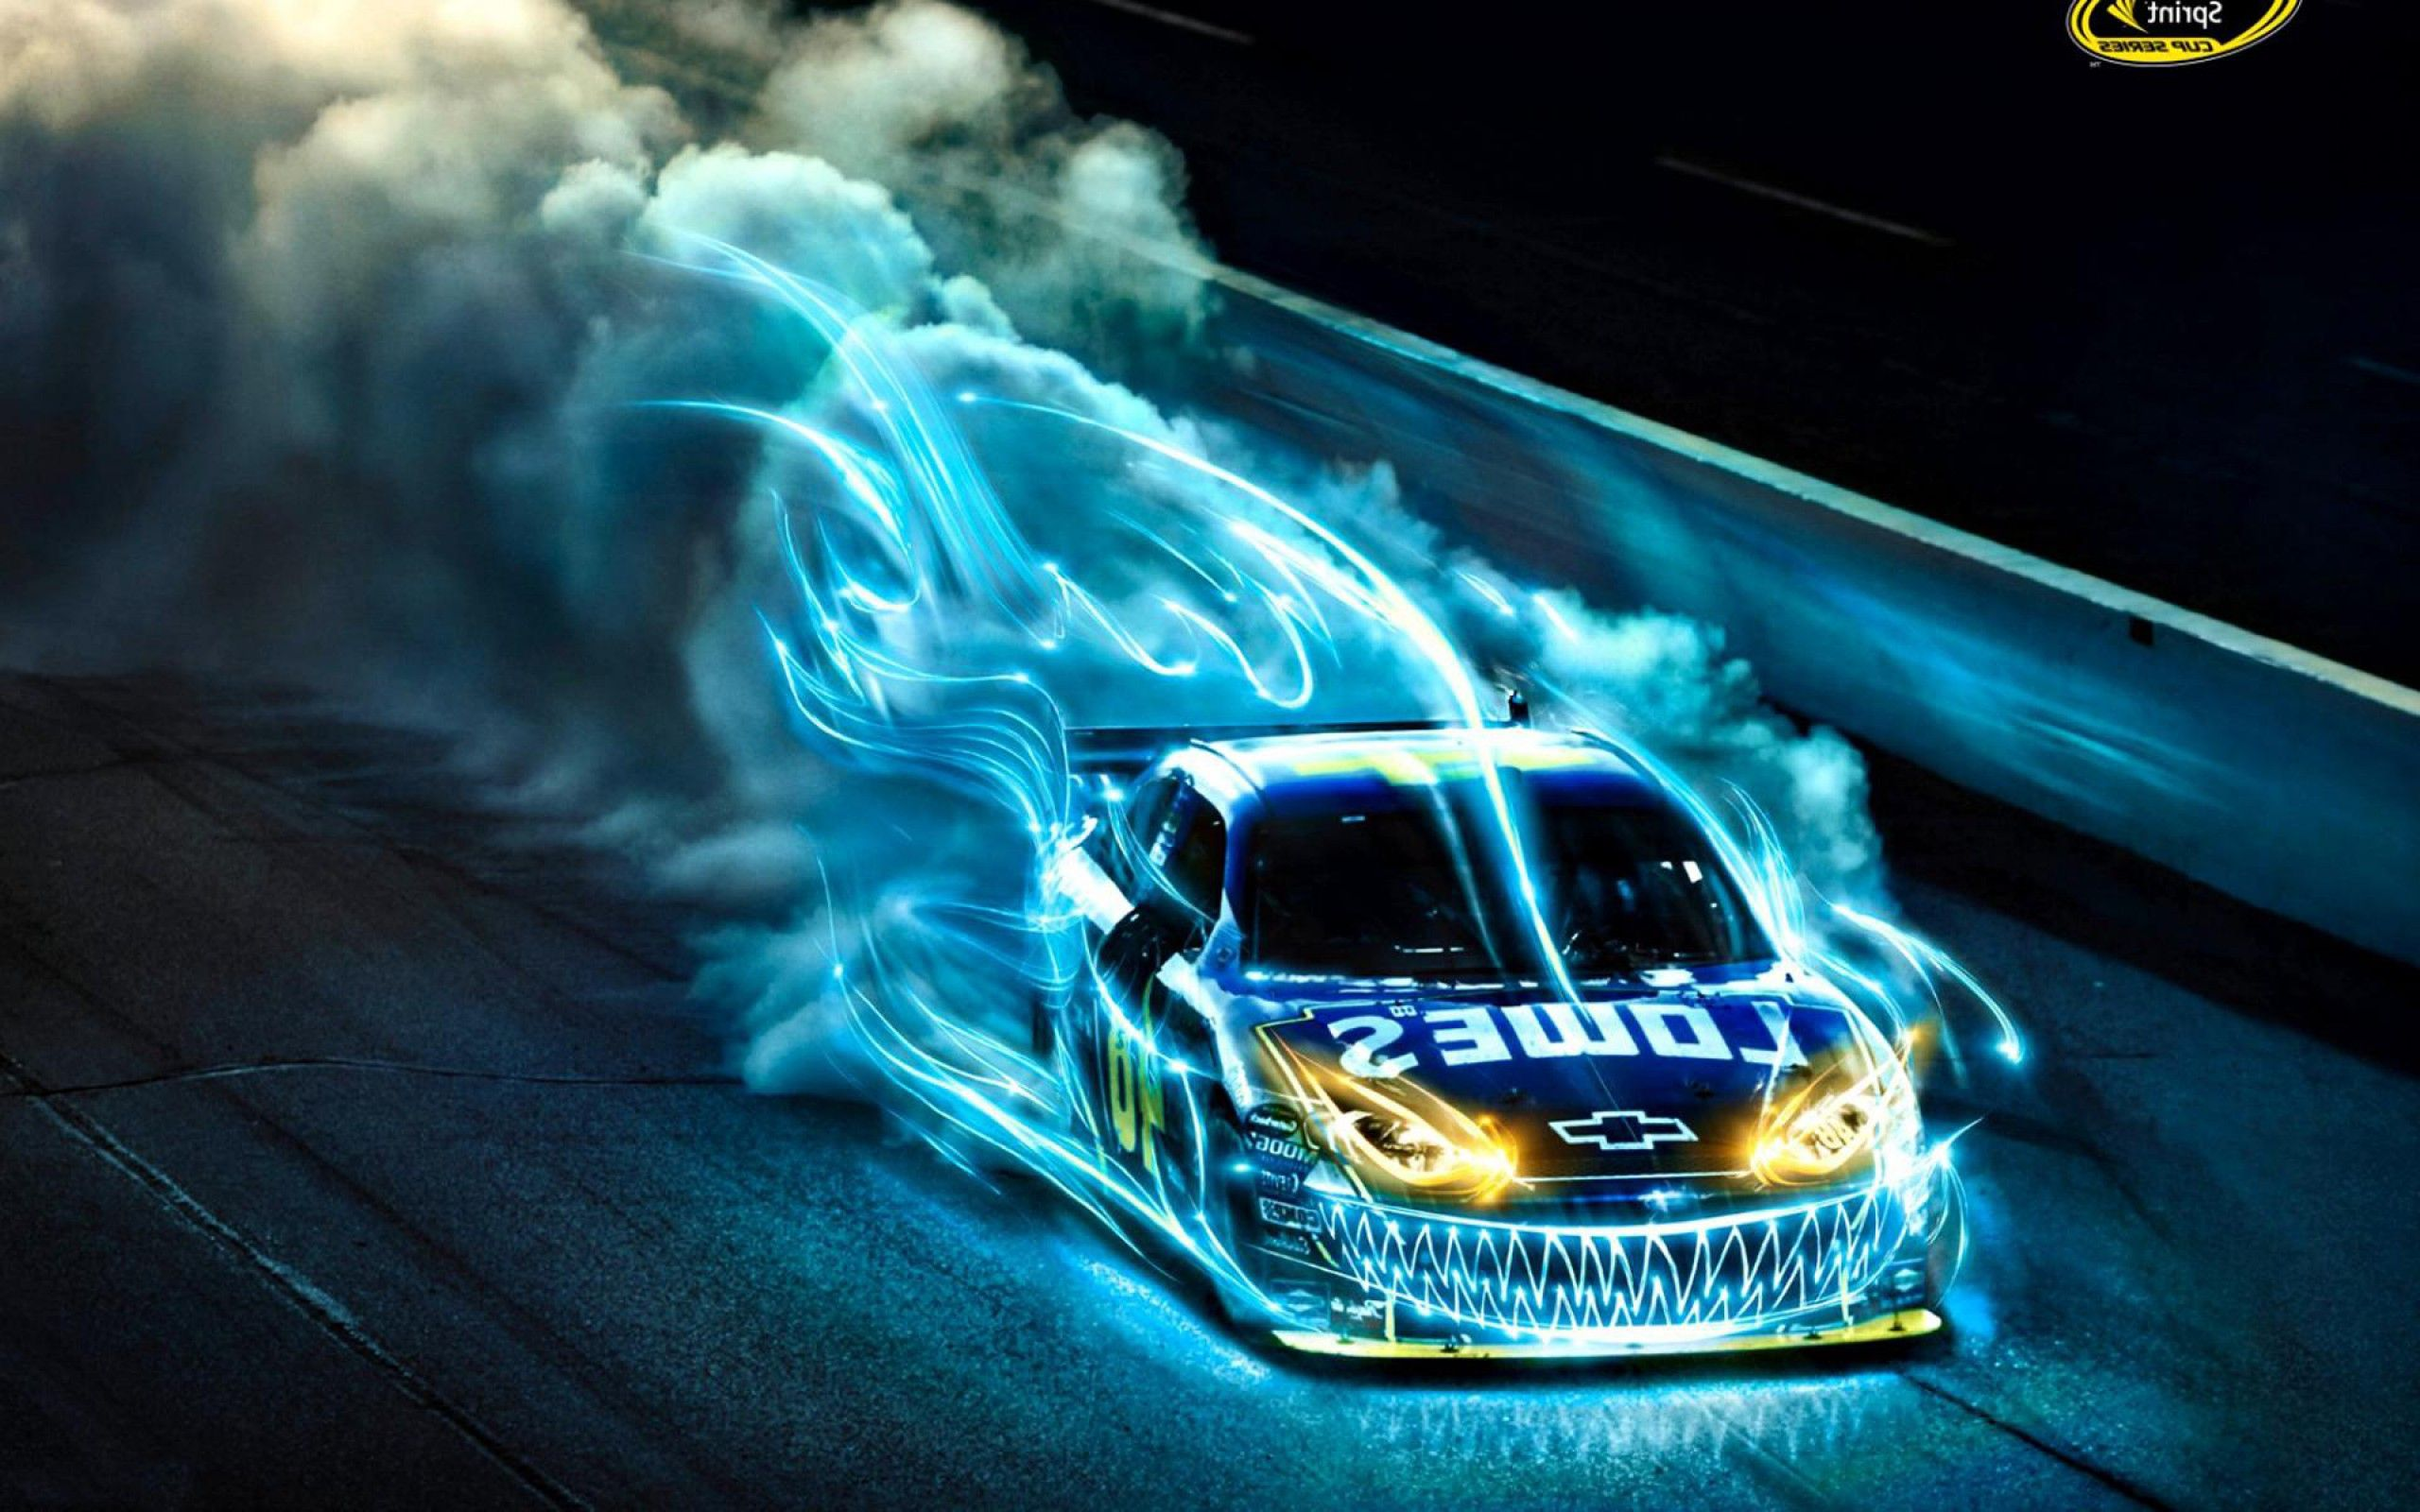 Racing Car Illuminated Wallpaper 215.55 Kb